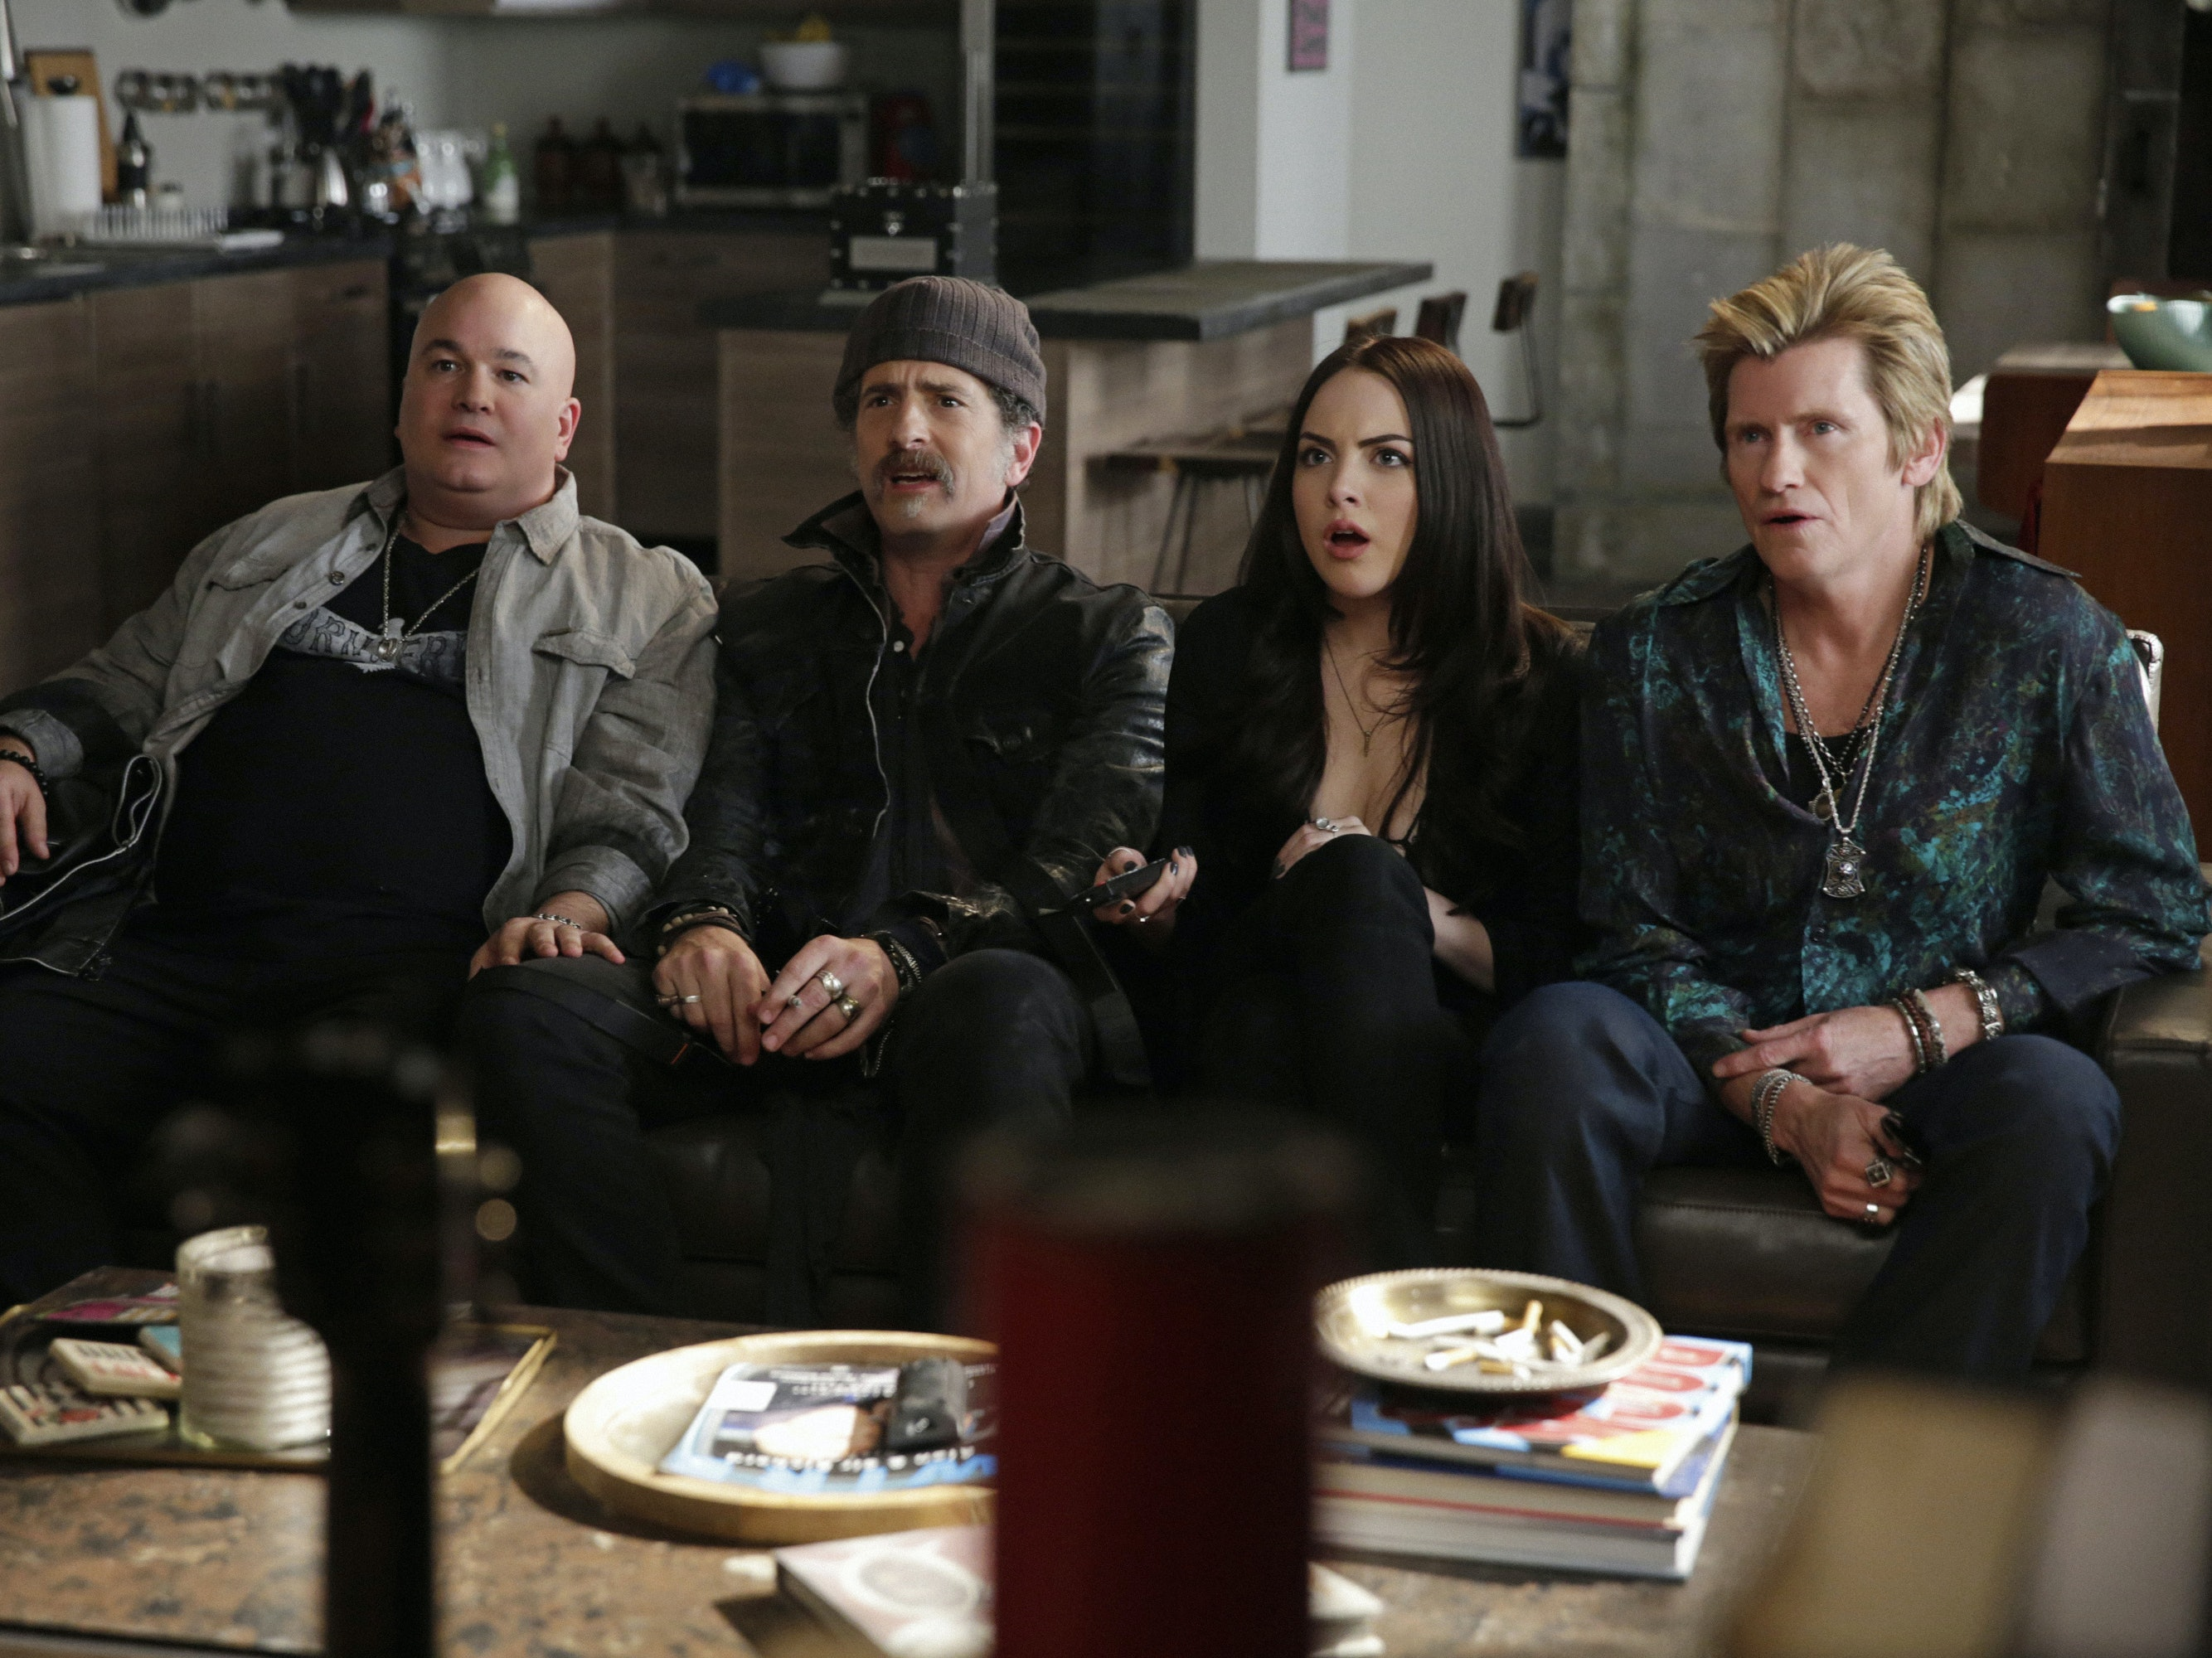 Sex&Drugs&Rock&Roll' Season 2 Is a Metaphor for Our Inconsequential Lives